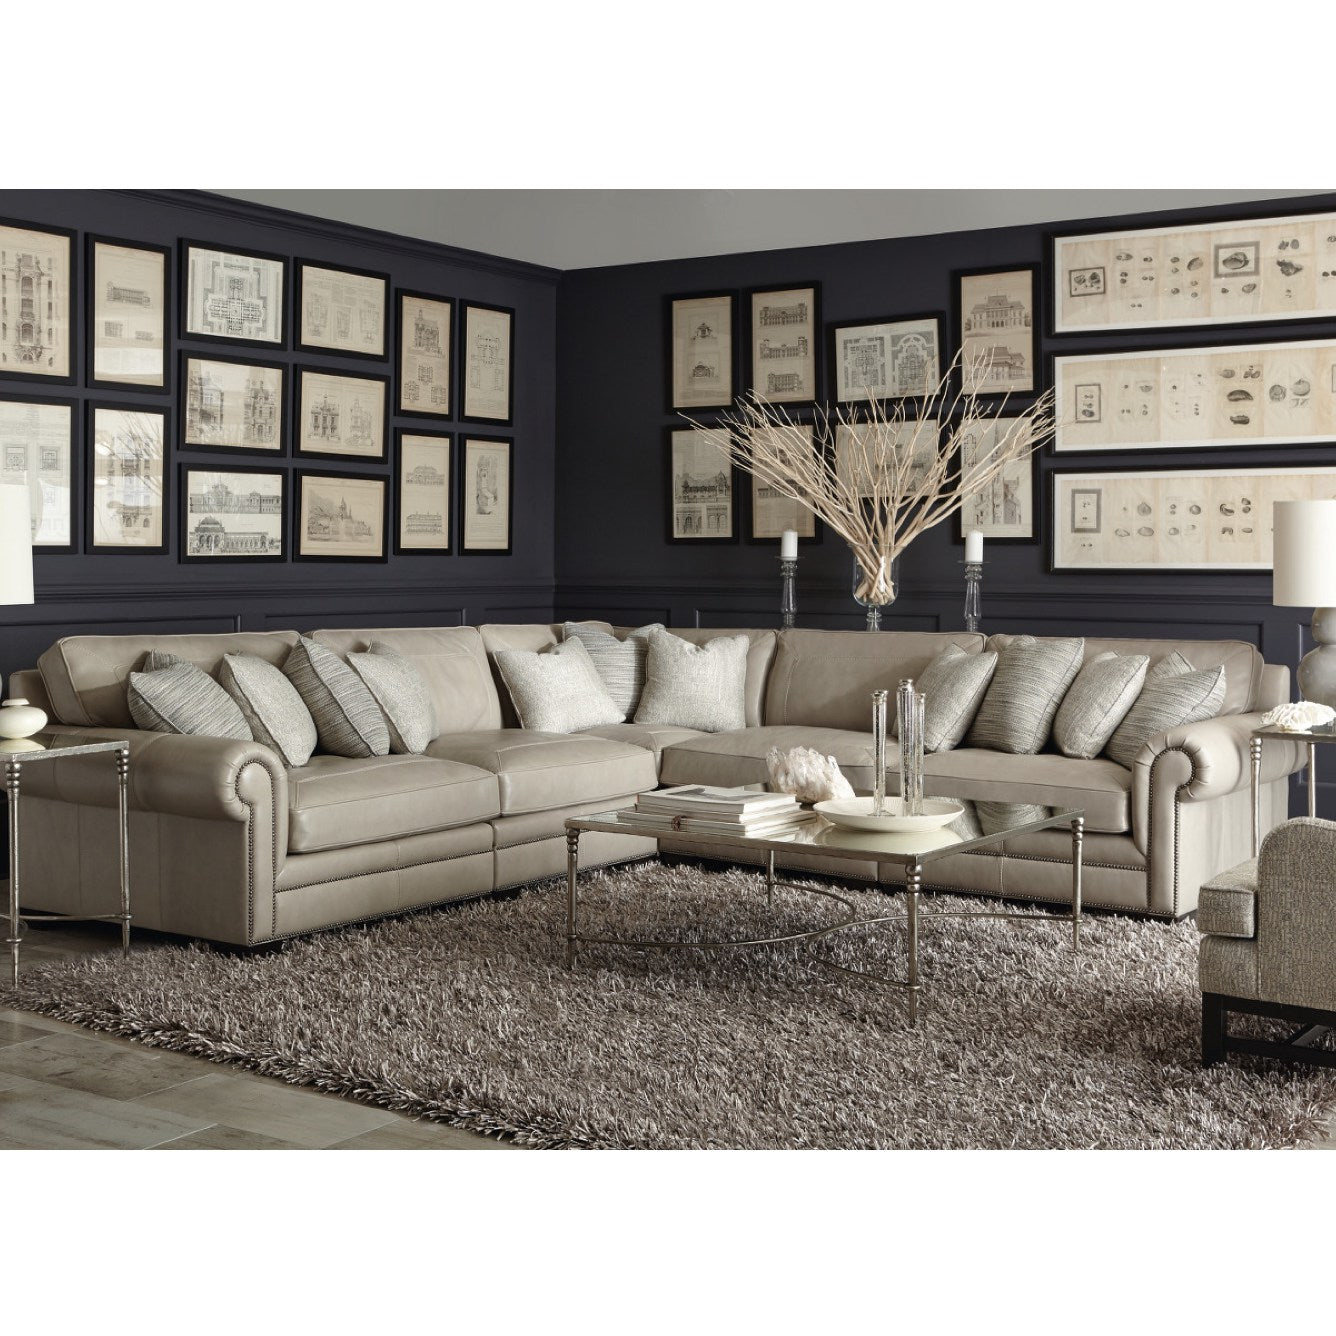 Pleasing Grandview Leather Sectional By Bernhardt Barrow Fine Furniture Forskolin Free Trial Chair Design Images Forskolin Free Trialorg